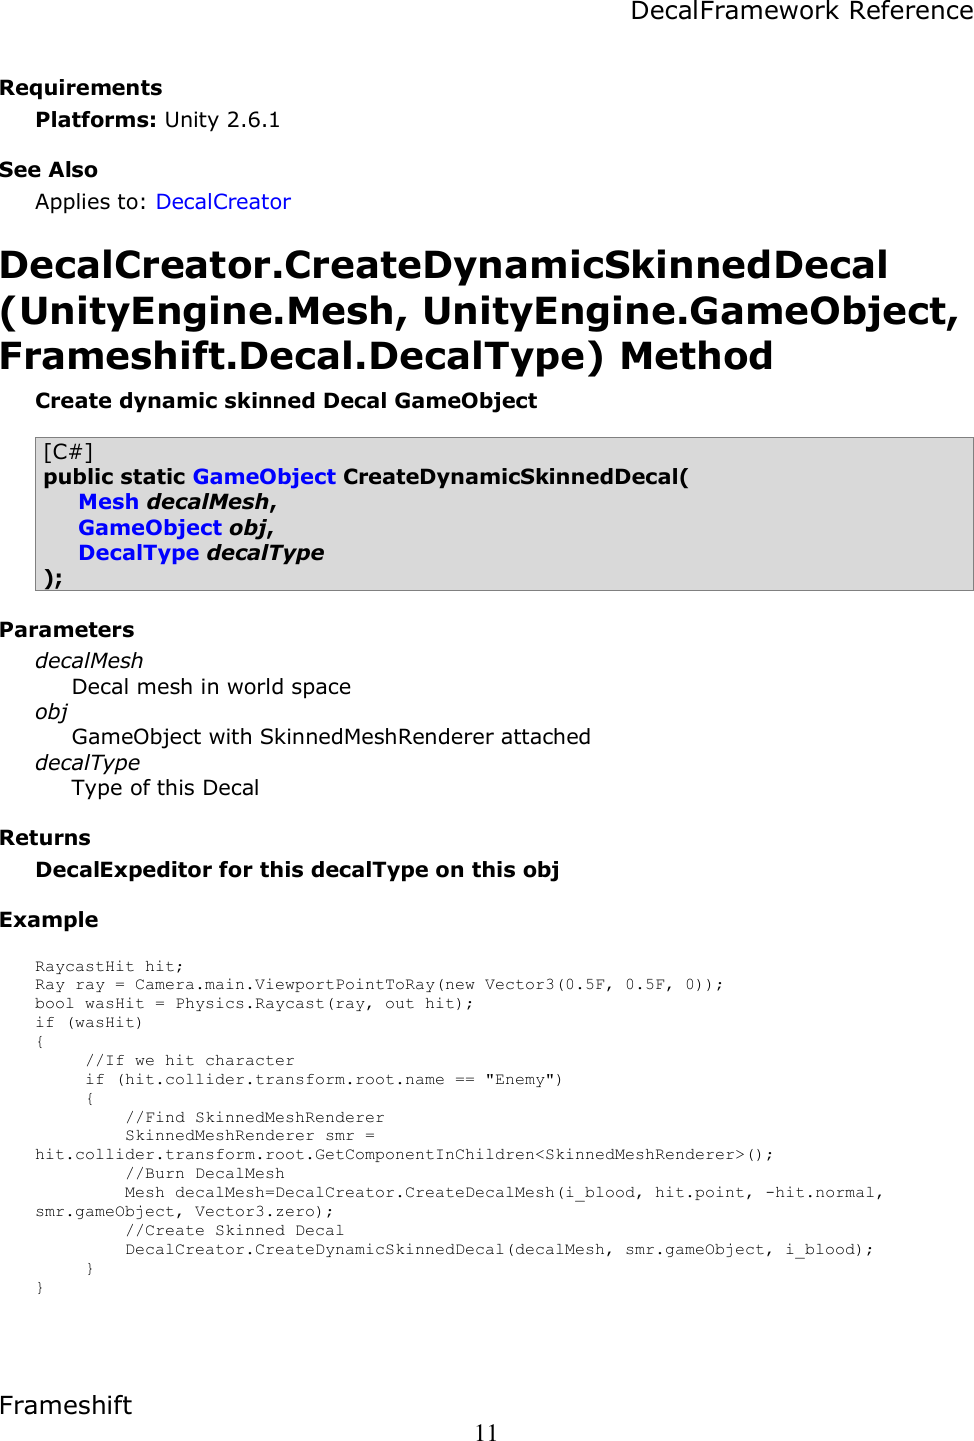 DecalFramework Reference Decal Framework 2 Scripting Manual